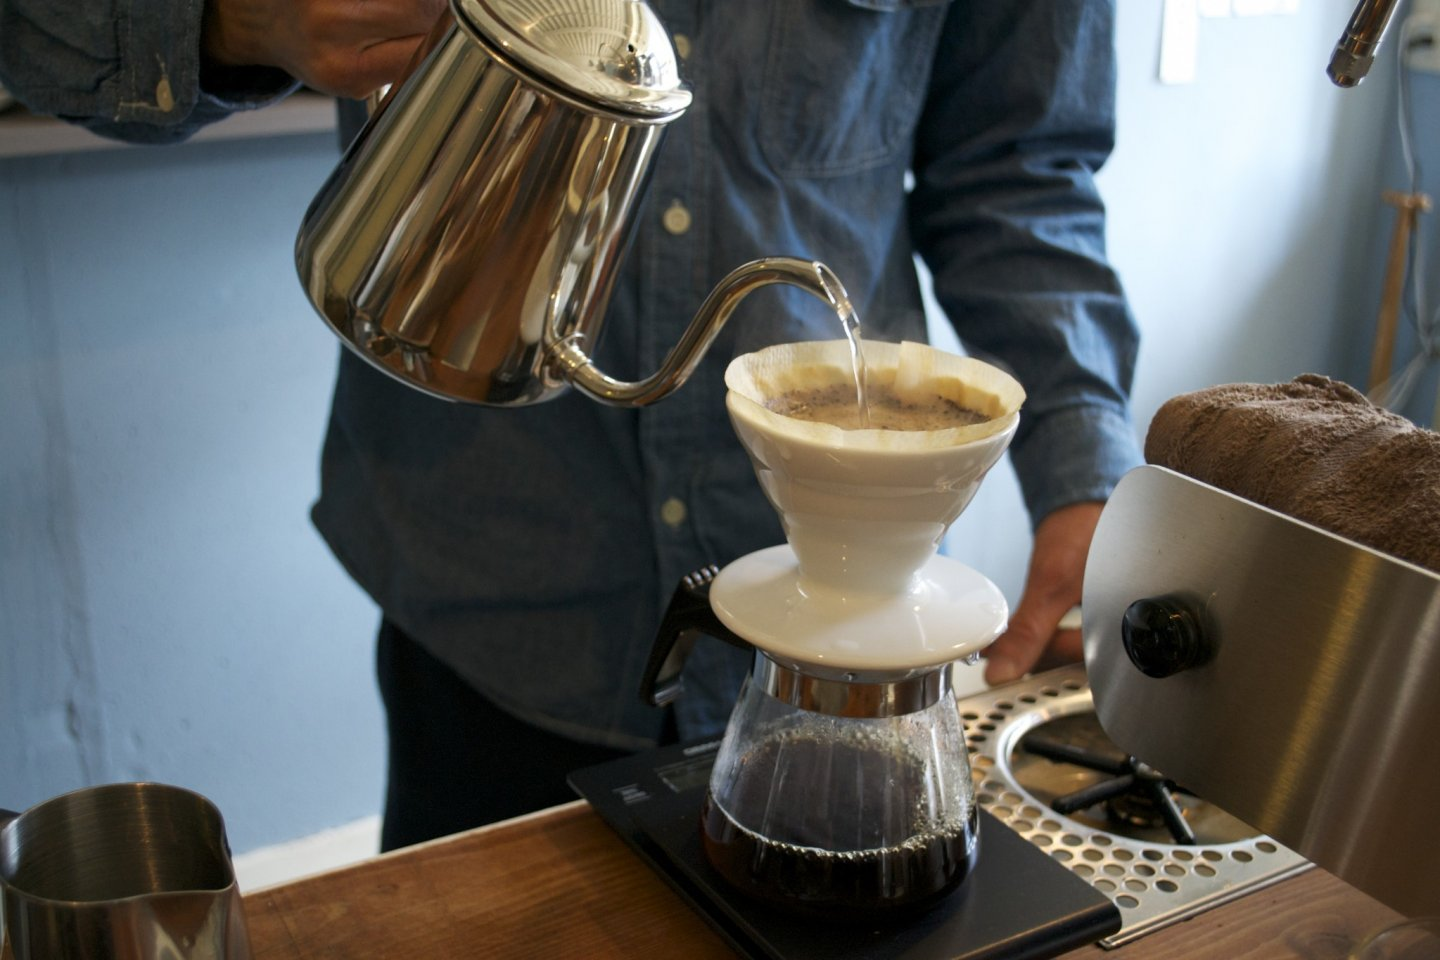 The barista prepares the filtered coffee